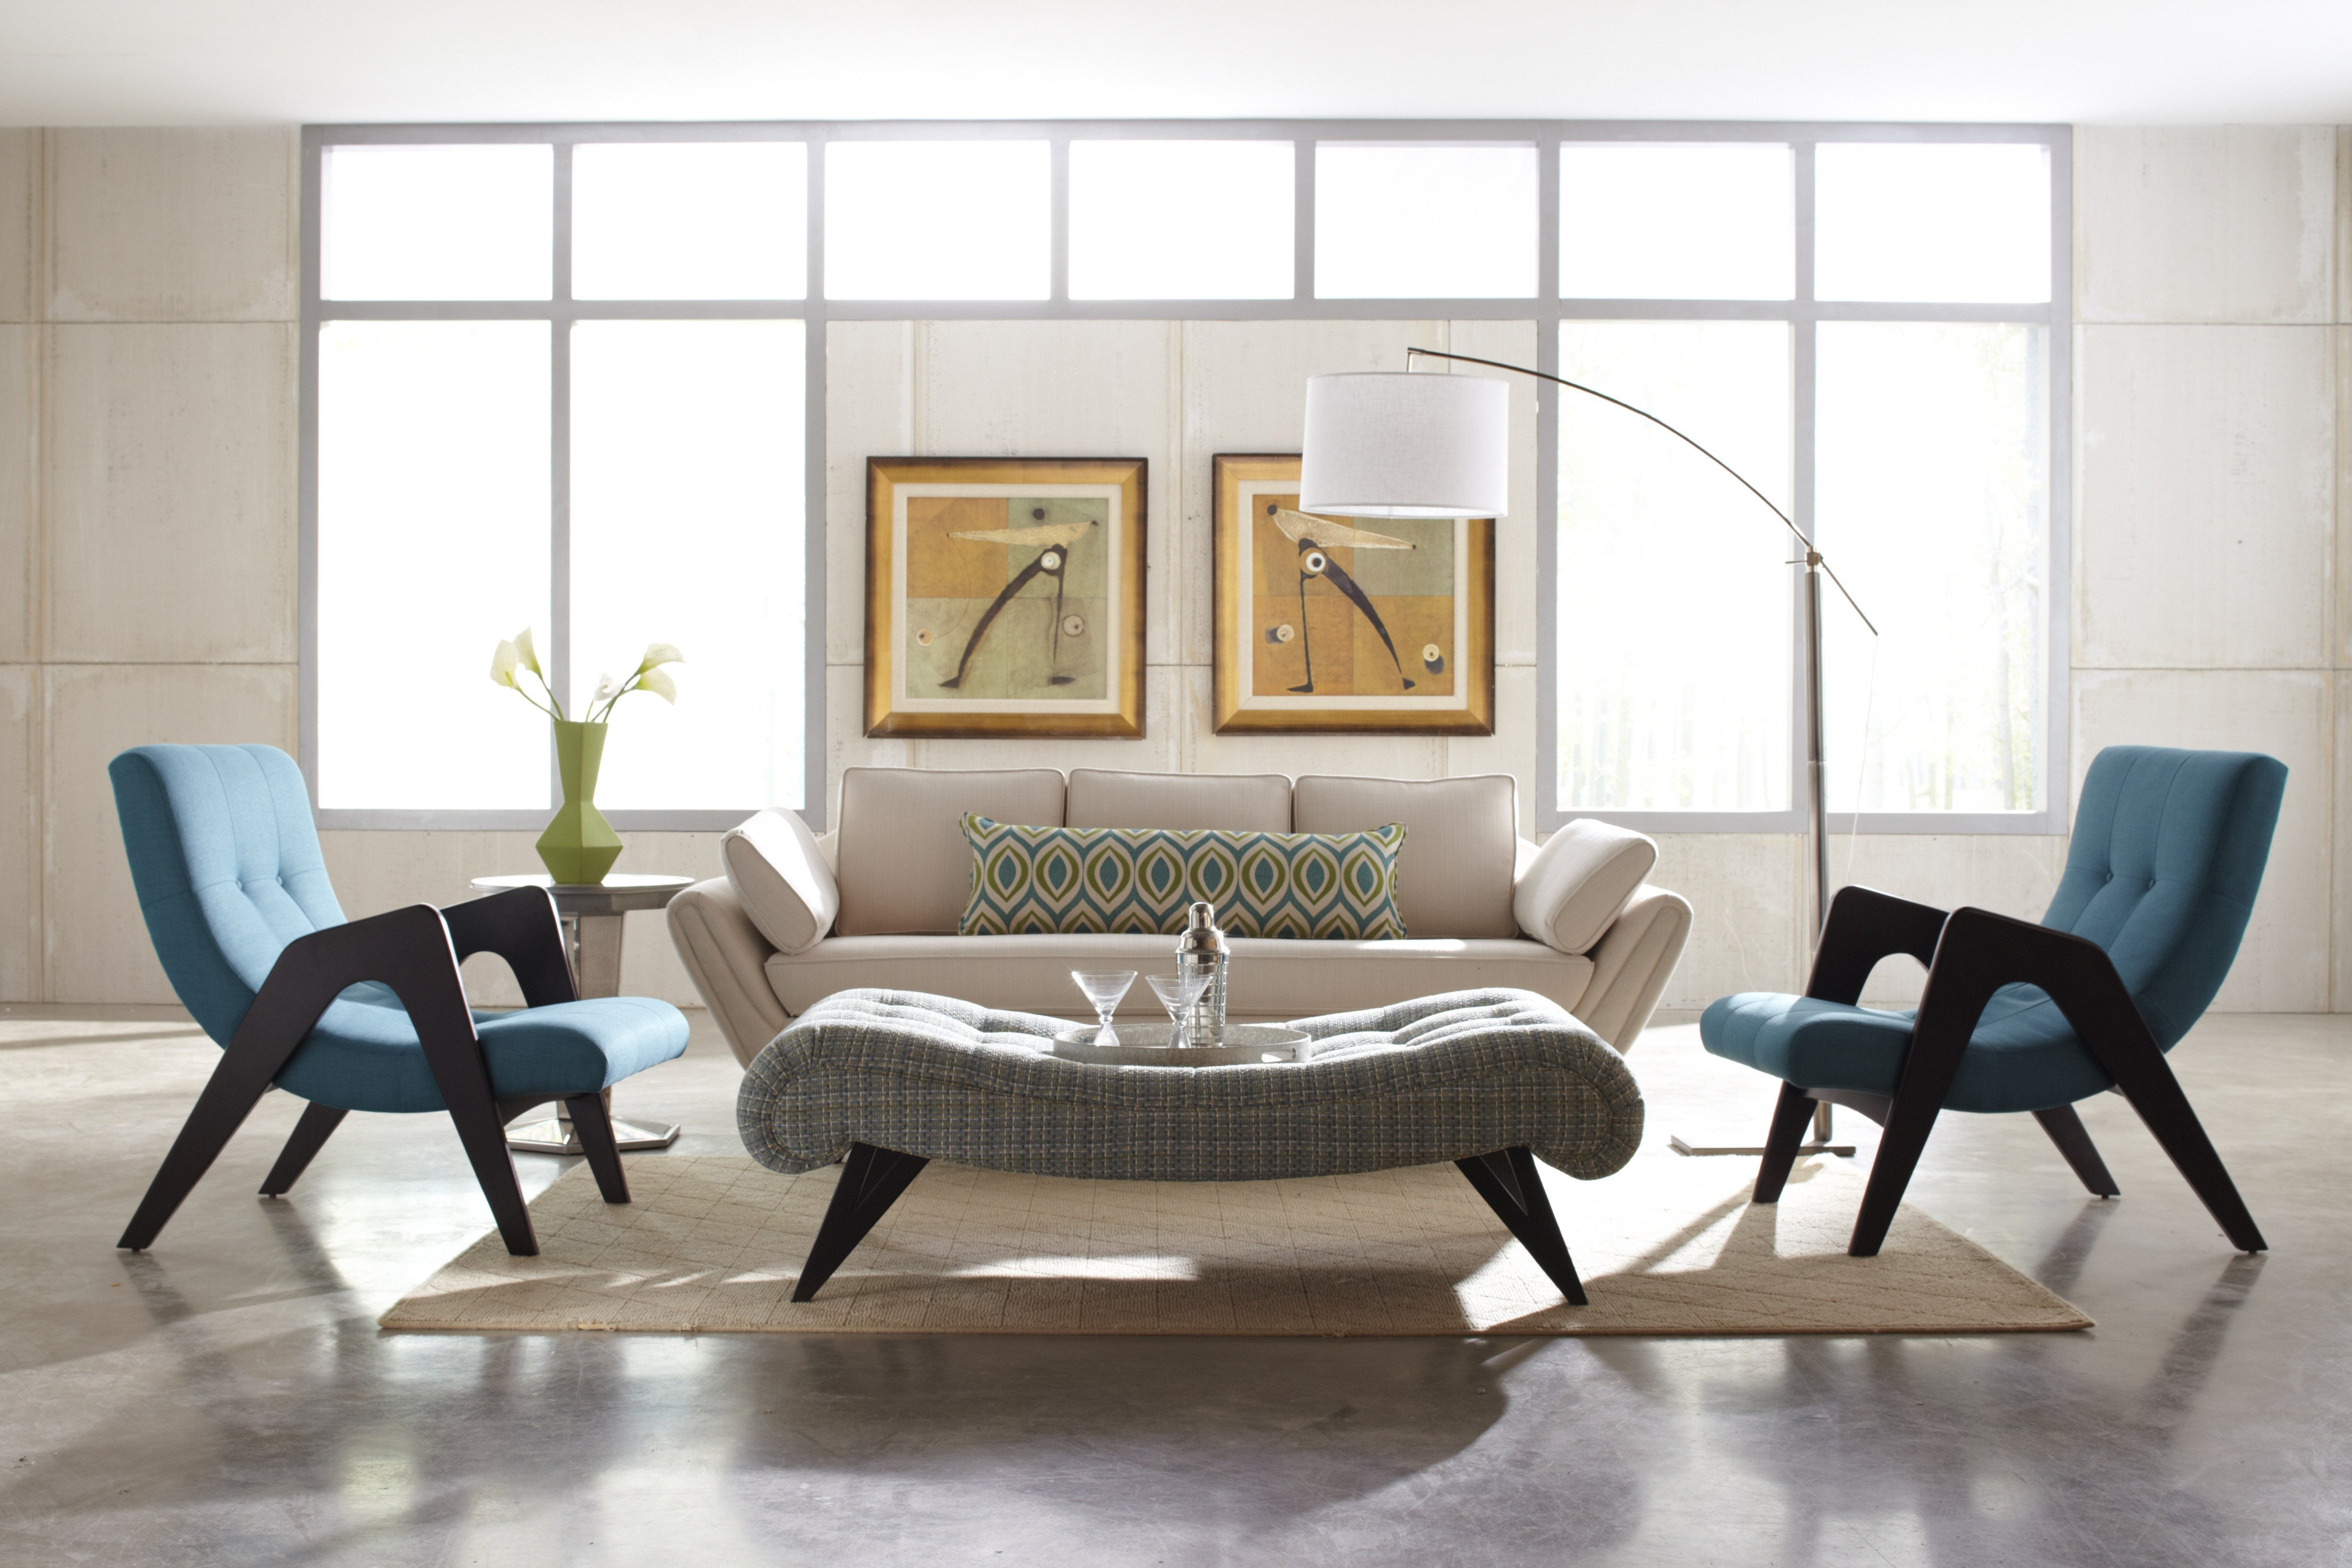 Contemporary Living Room Benches Unique Contemporary or Modern What's the Difference In Interior Design